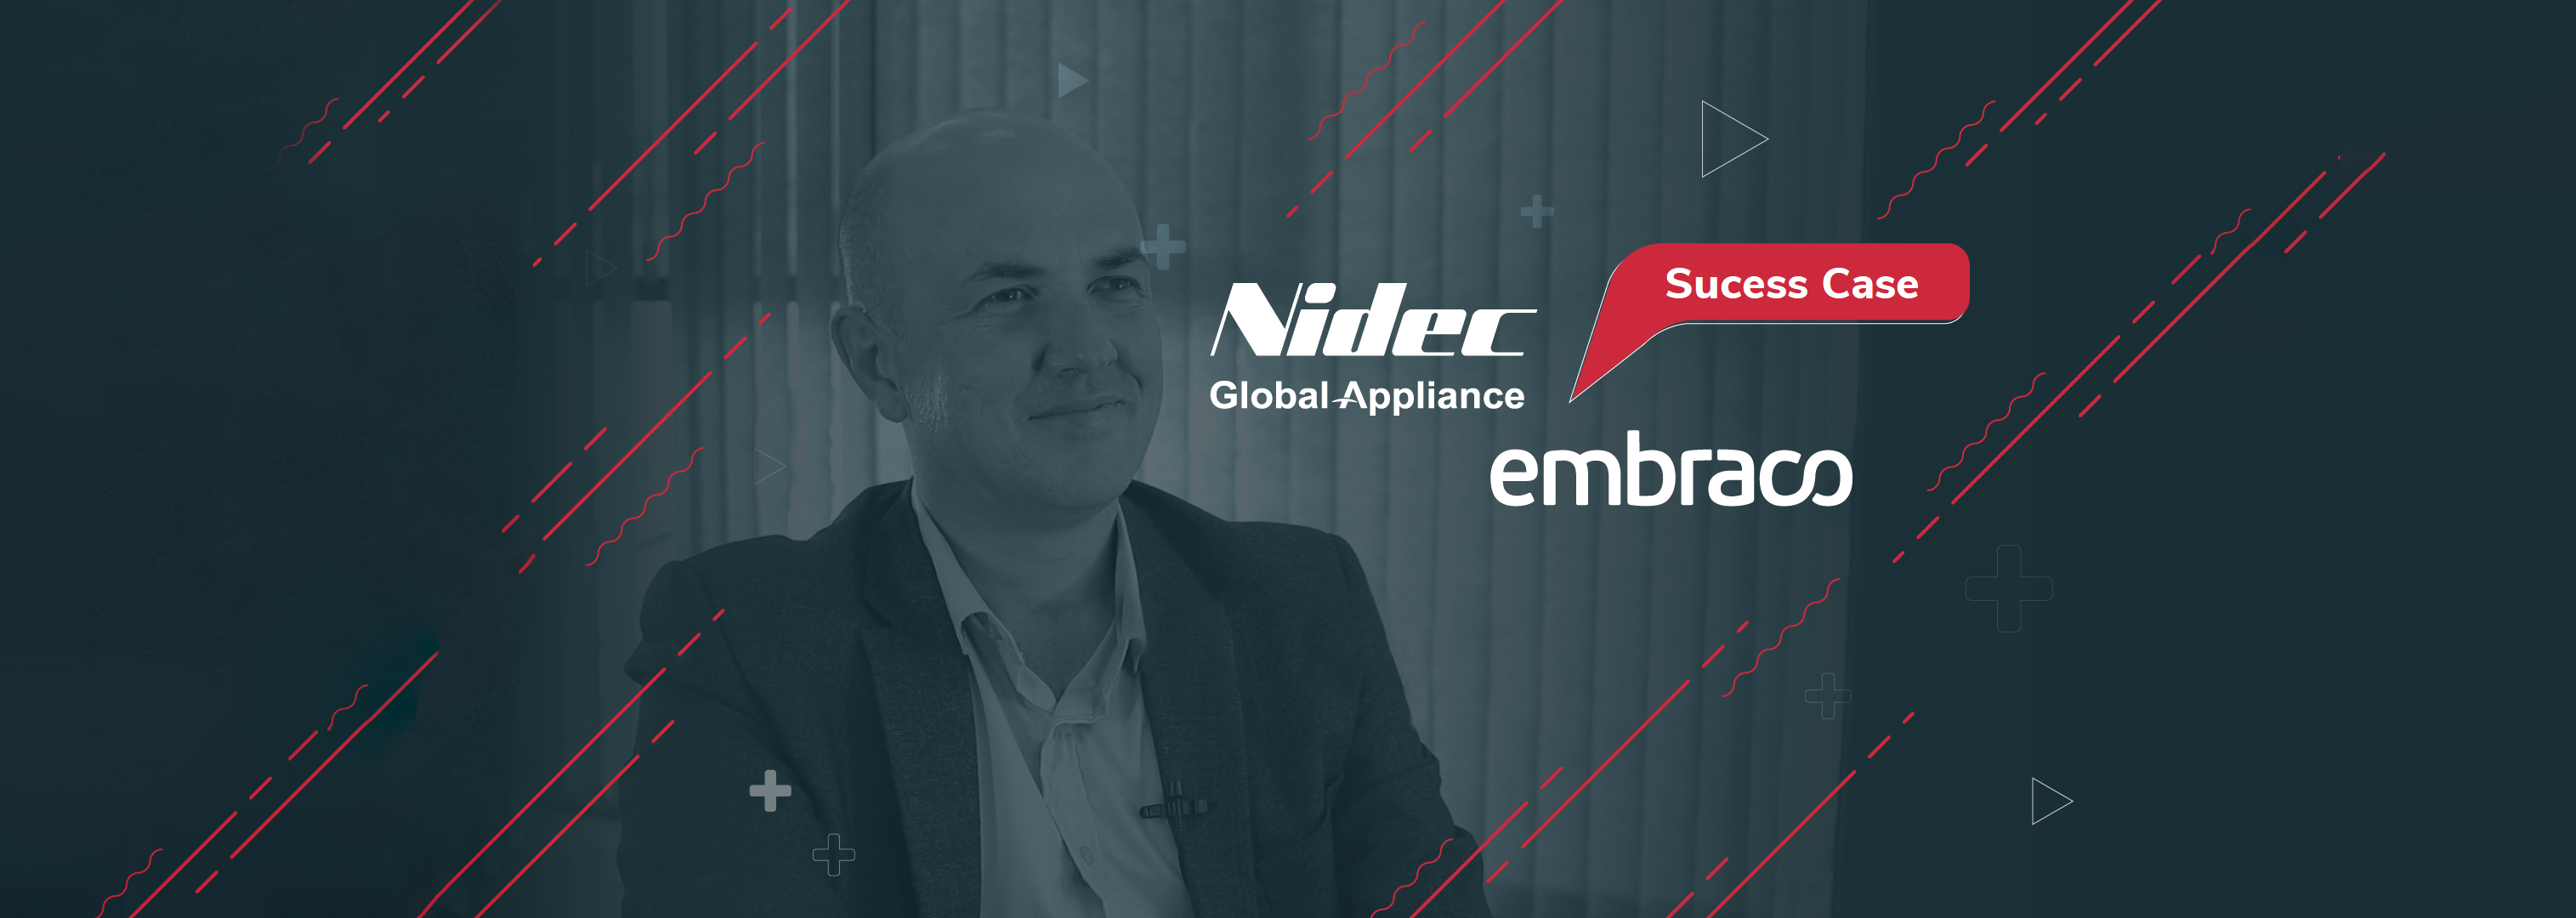 Nidec Global Appliance expands use of Fusion Platform globally